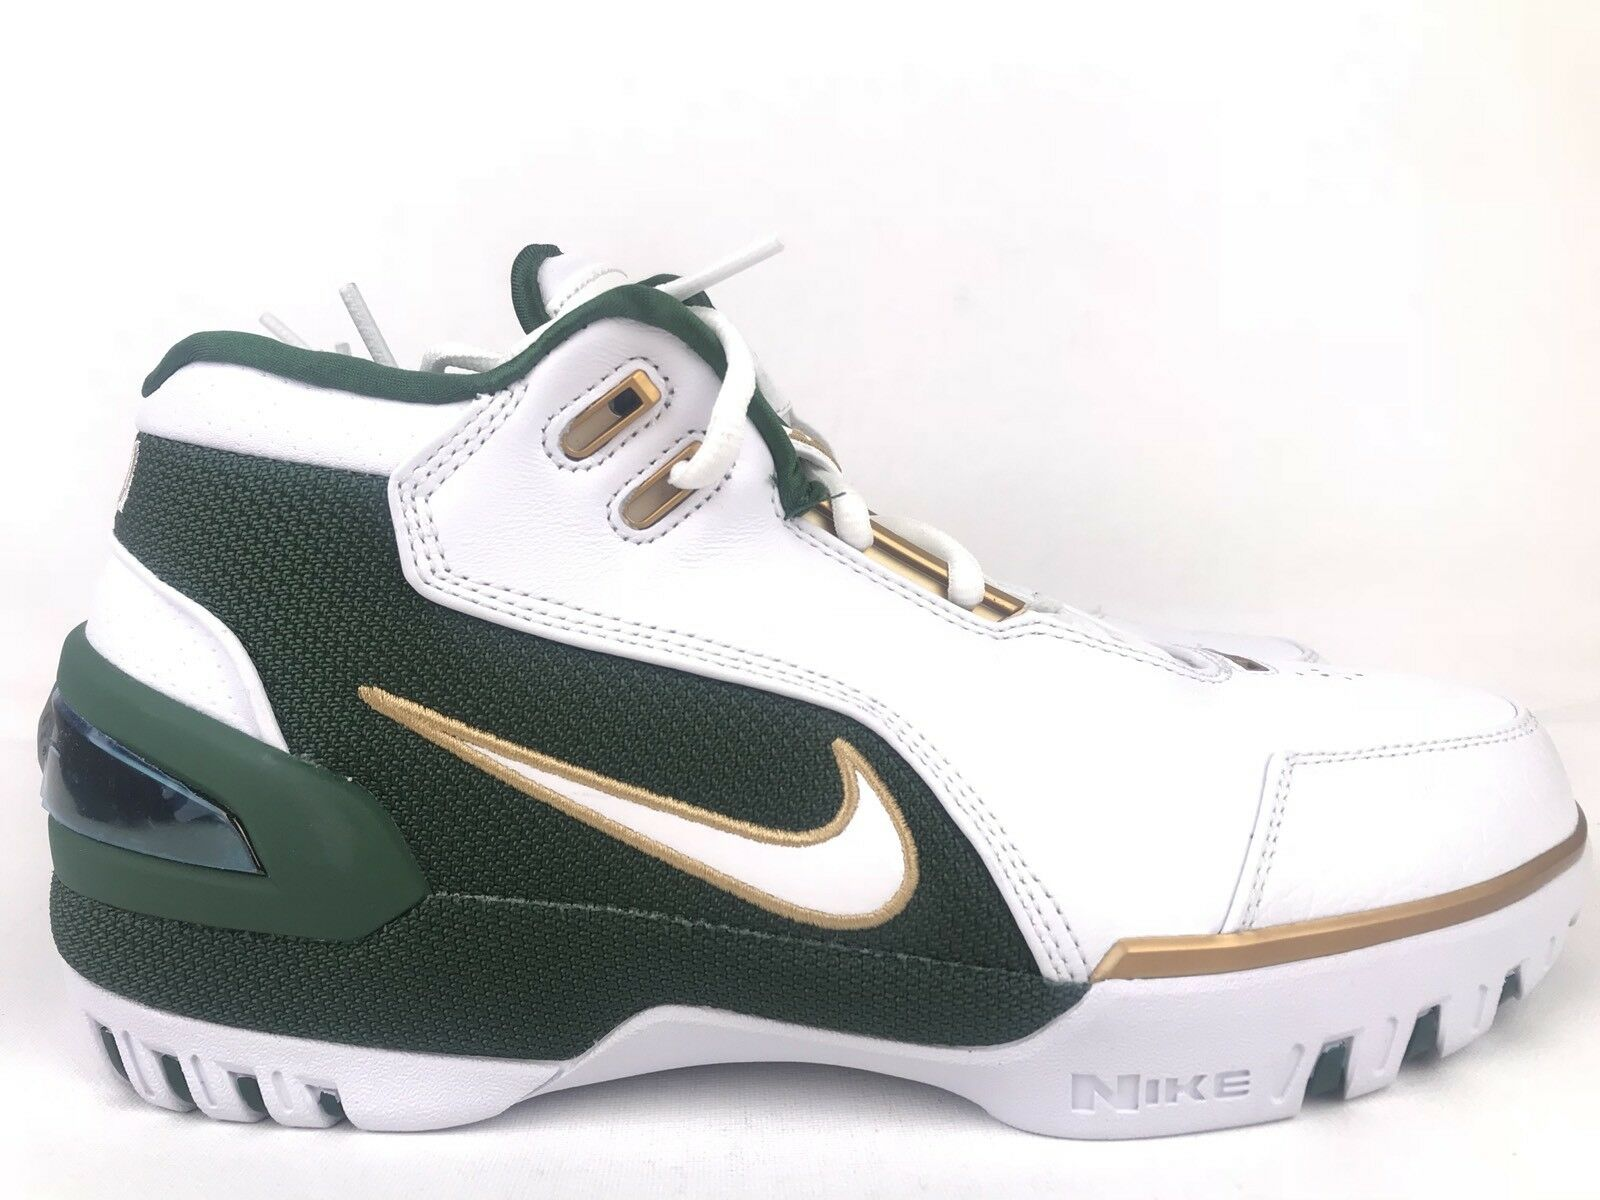 Nike Air Zoom Generation SVSM QS Mens Size 10 Limited AO2367-100 LeBron James